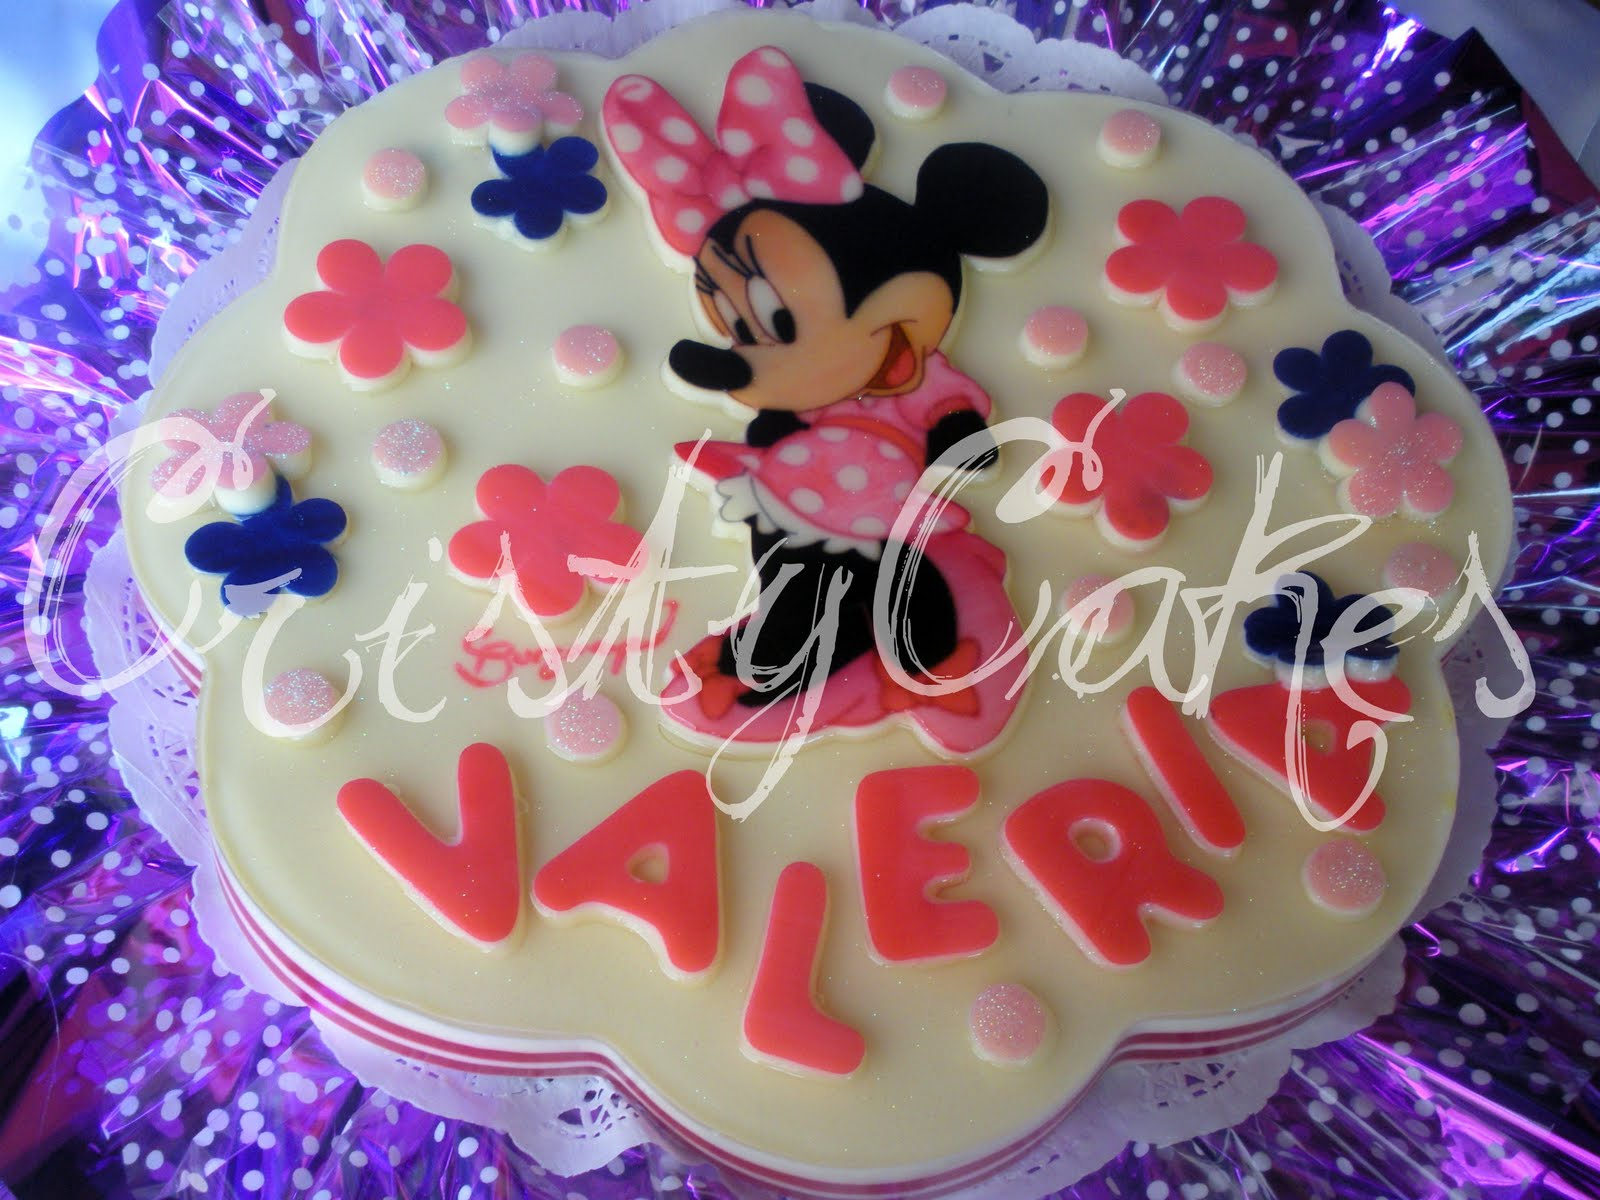 Cristy's Cakes: MInnie Mouse